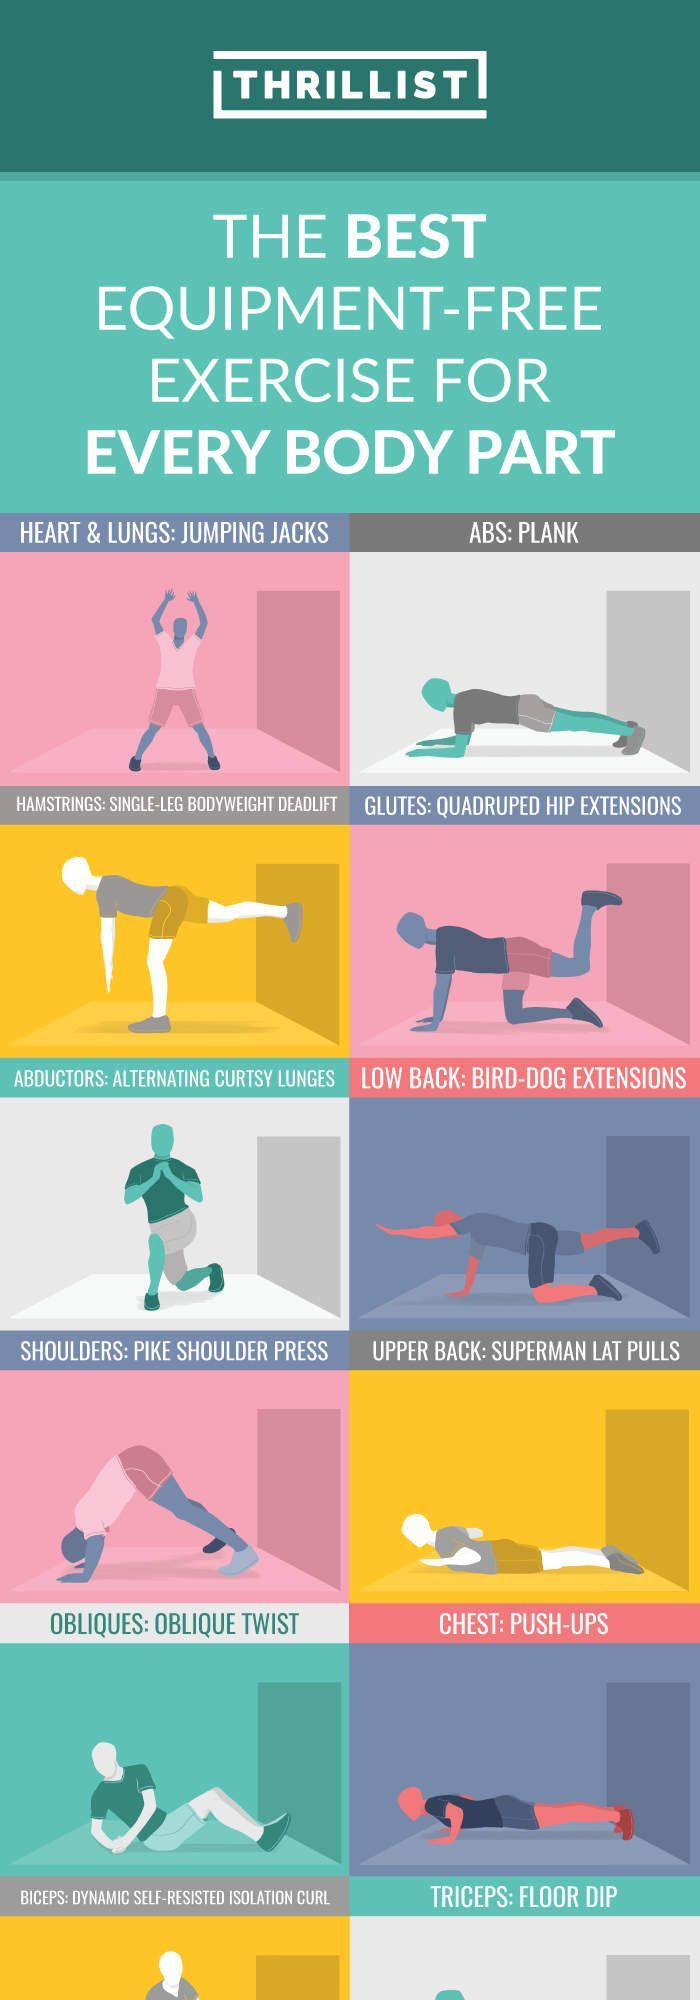 Best Equipment-Free Bodyweight Exercises & Workouts for Every Body Part